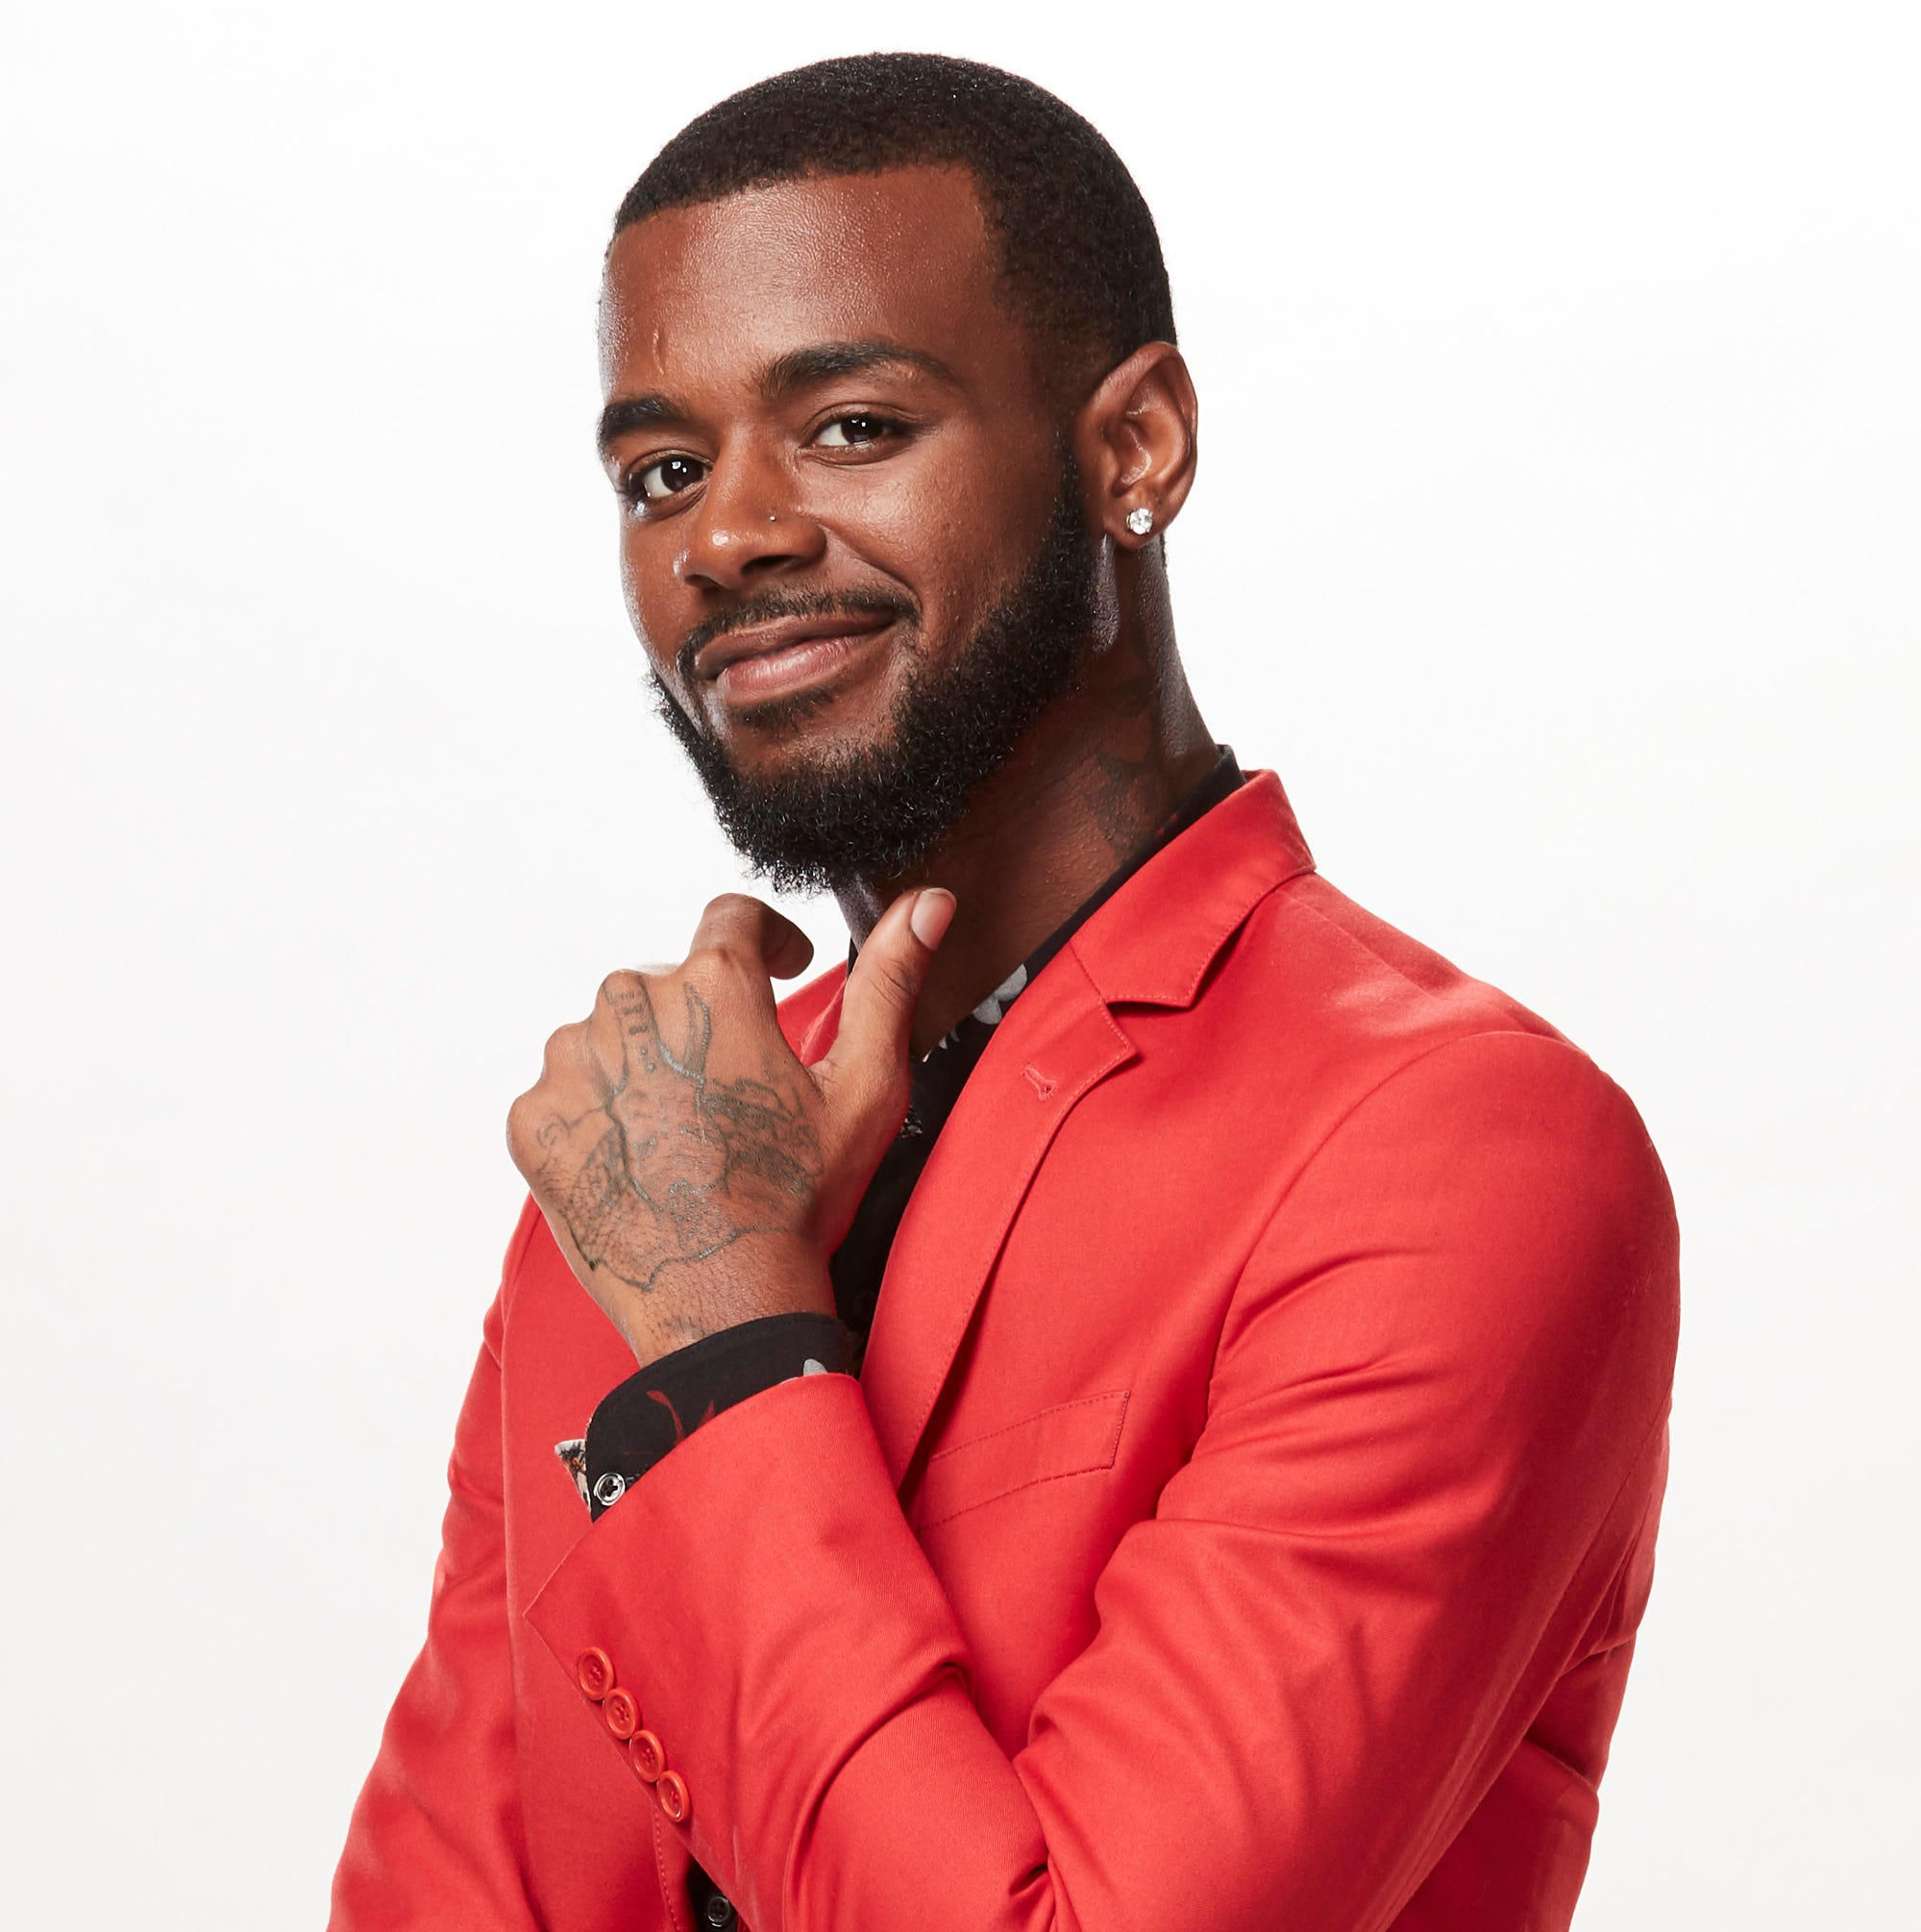 How did Cincinnati native Tyshawn Colquitt fare on 'The Voice?'